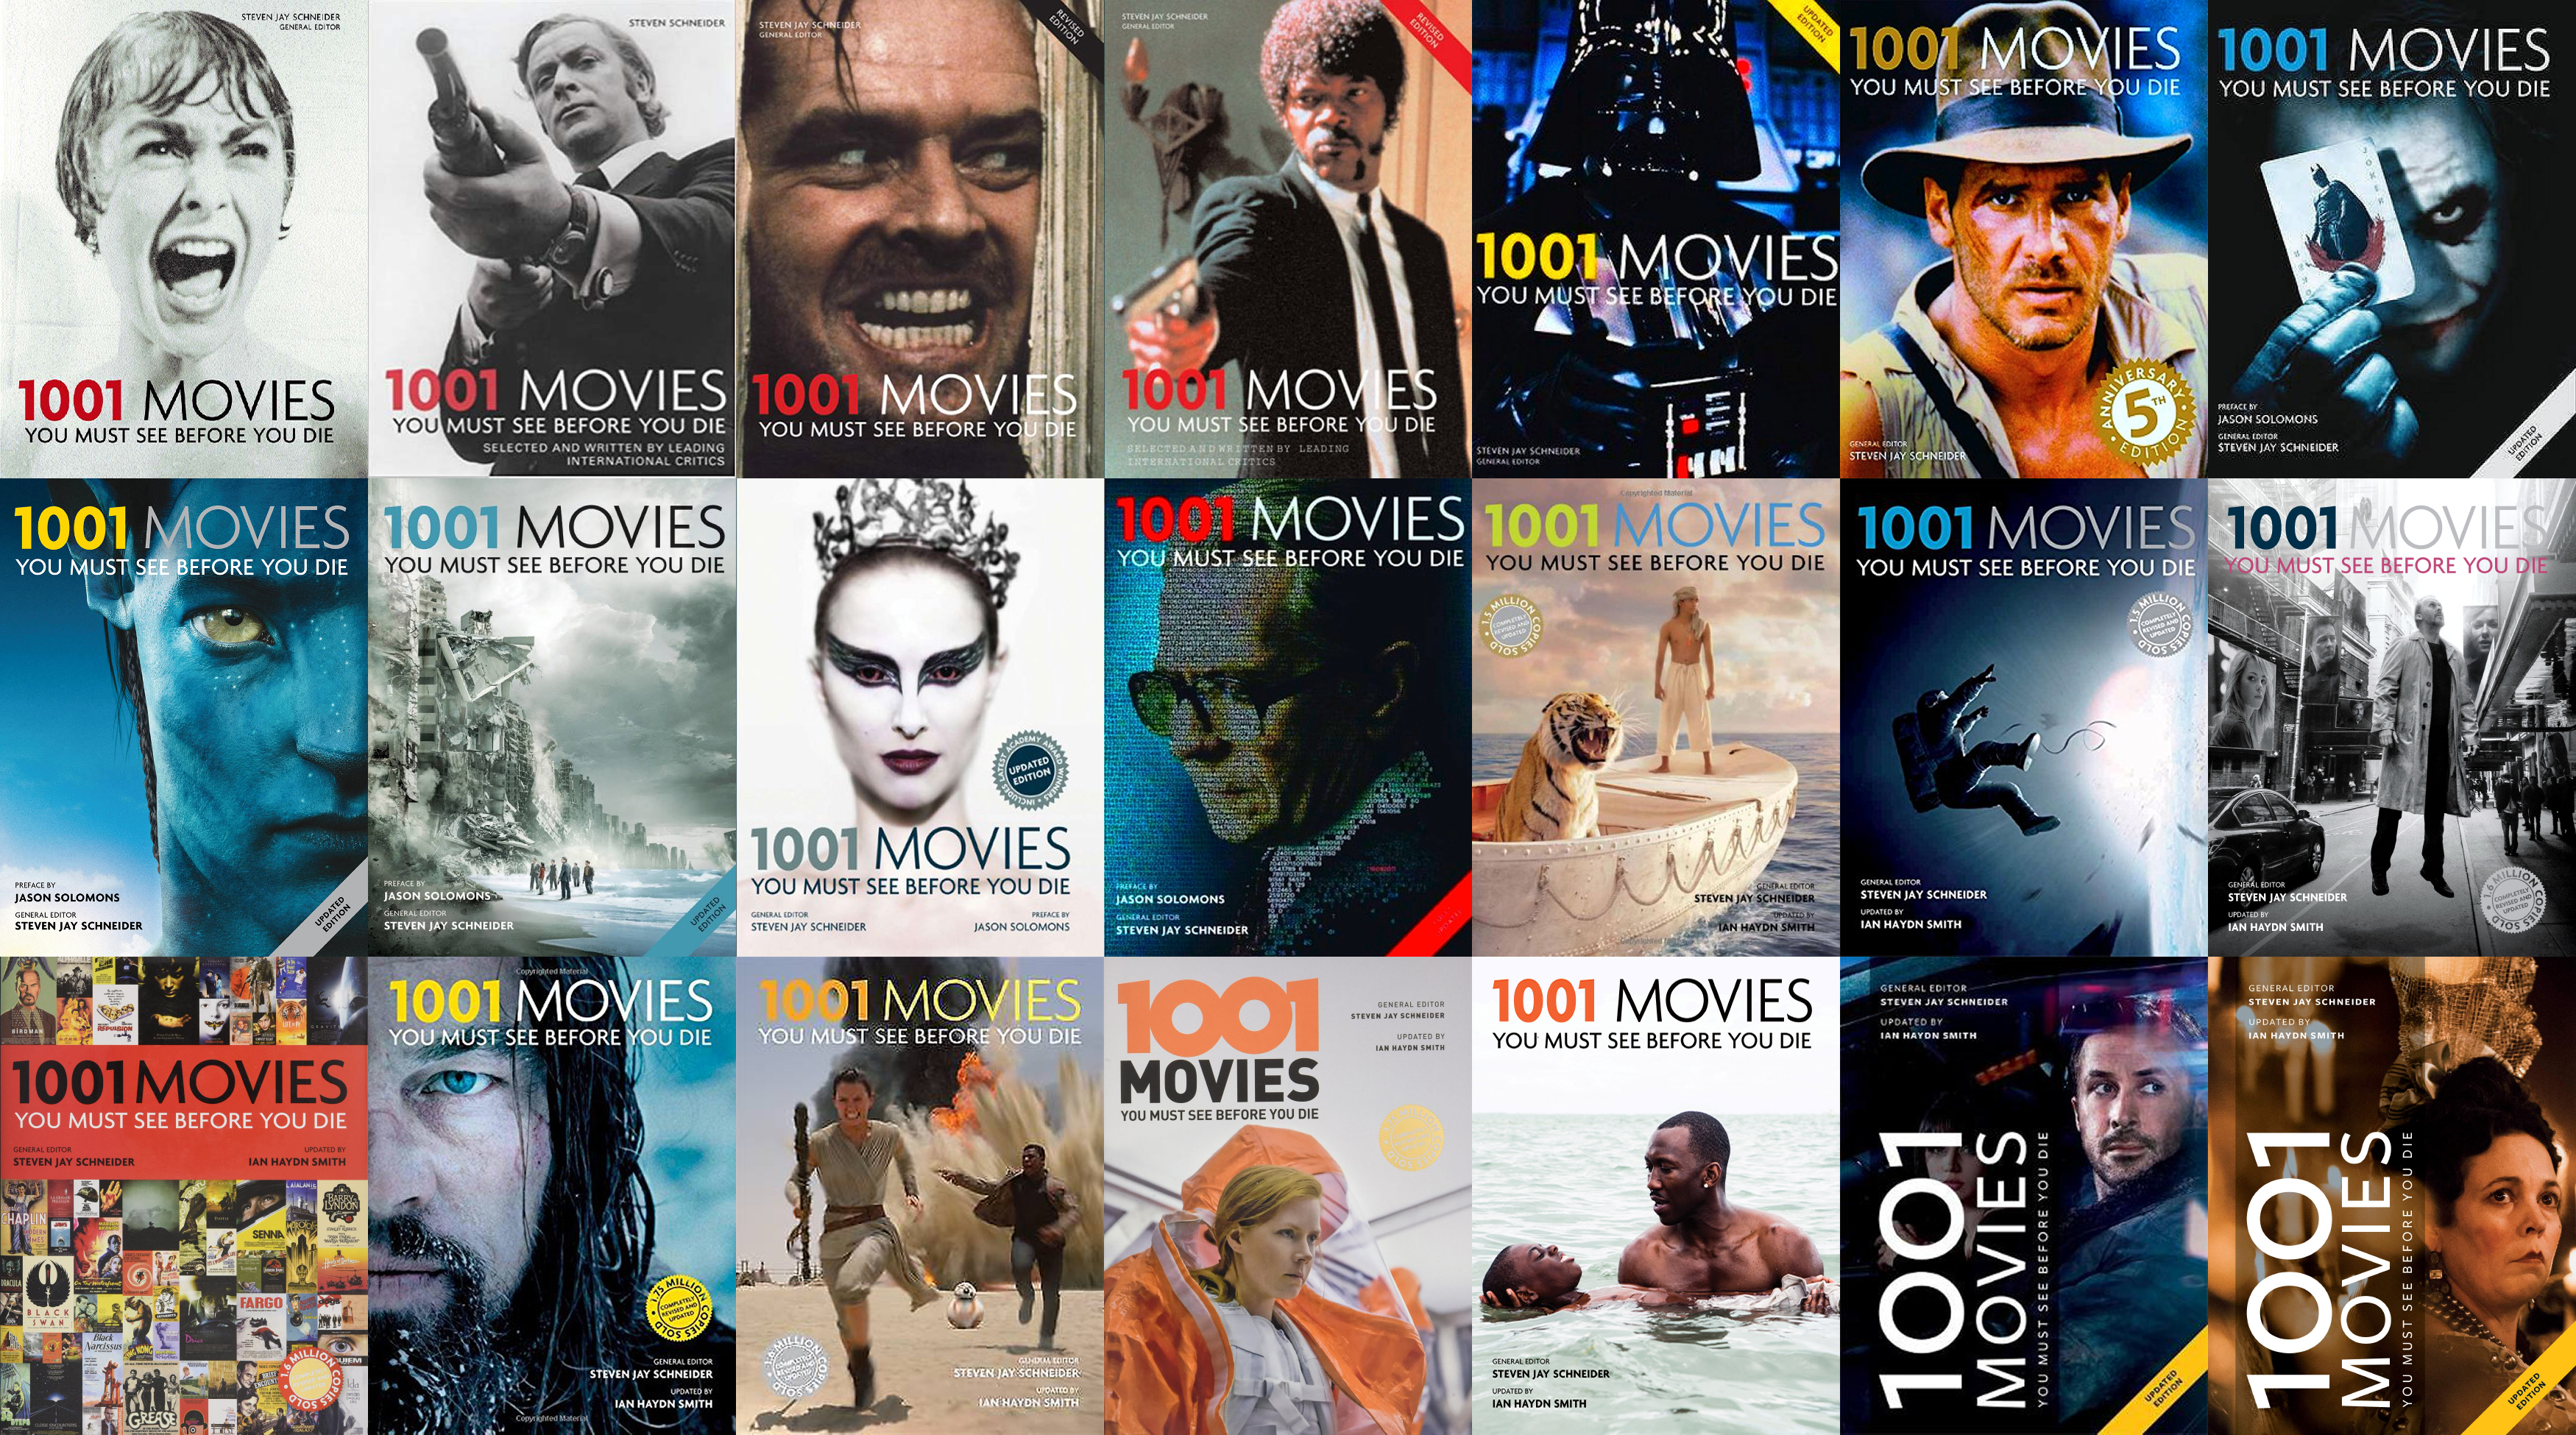 The Books 1001 Movies You Must See Before You Die Wiki Fandom